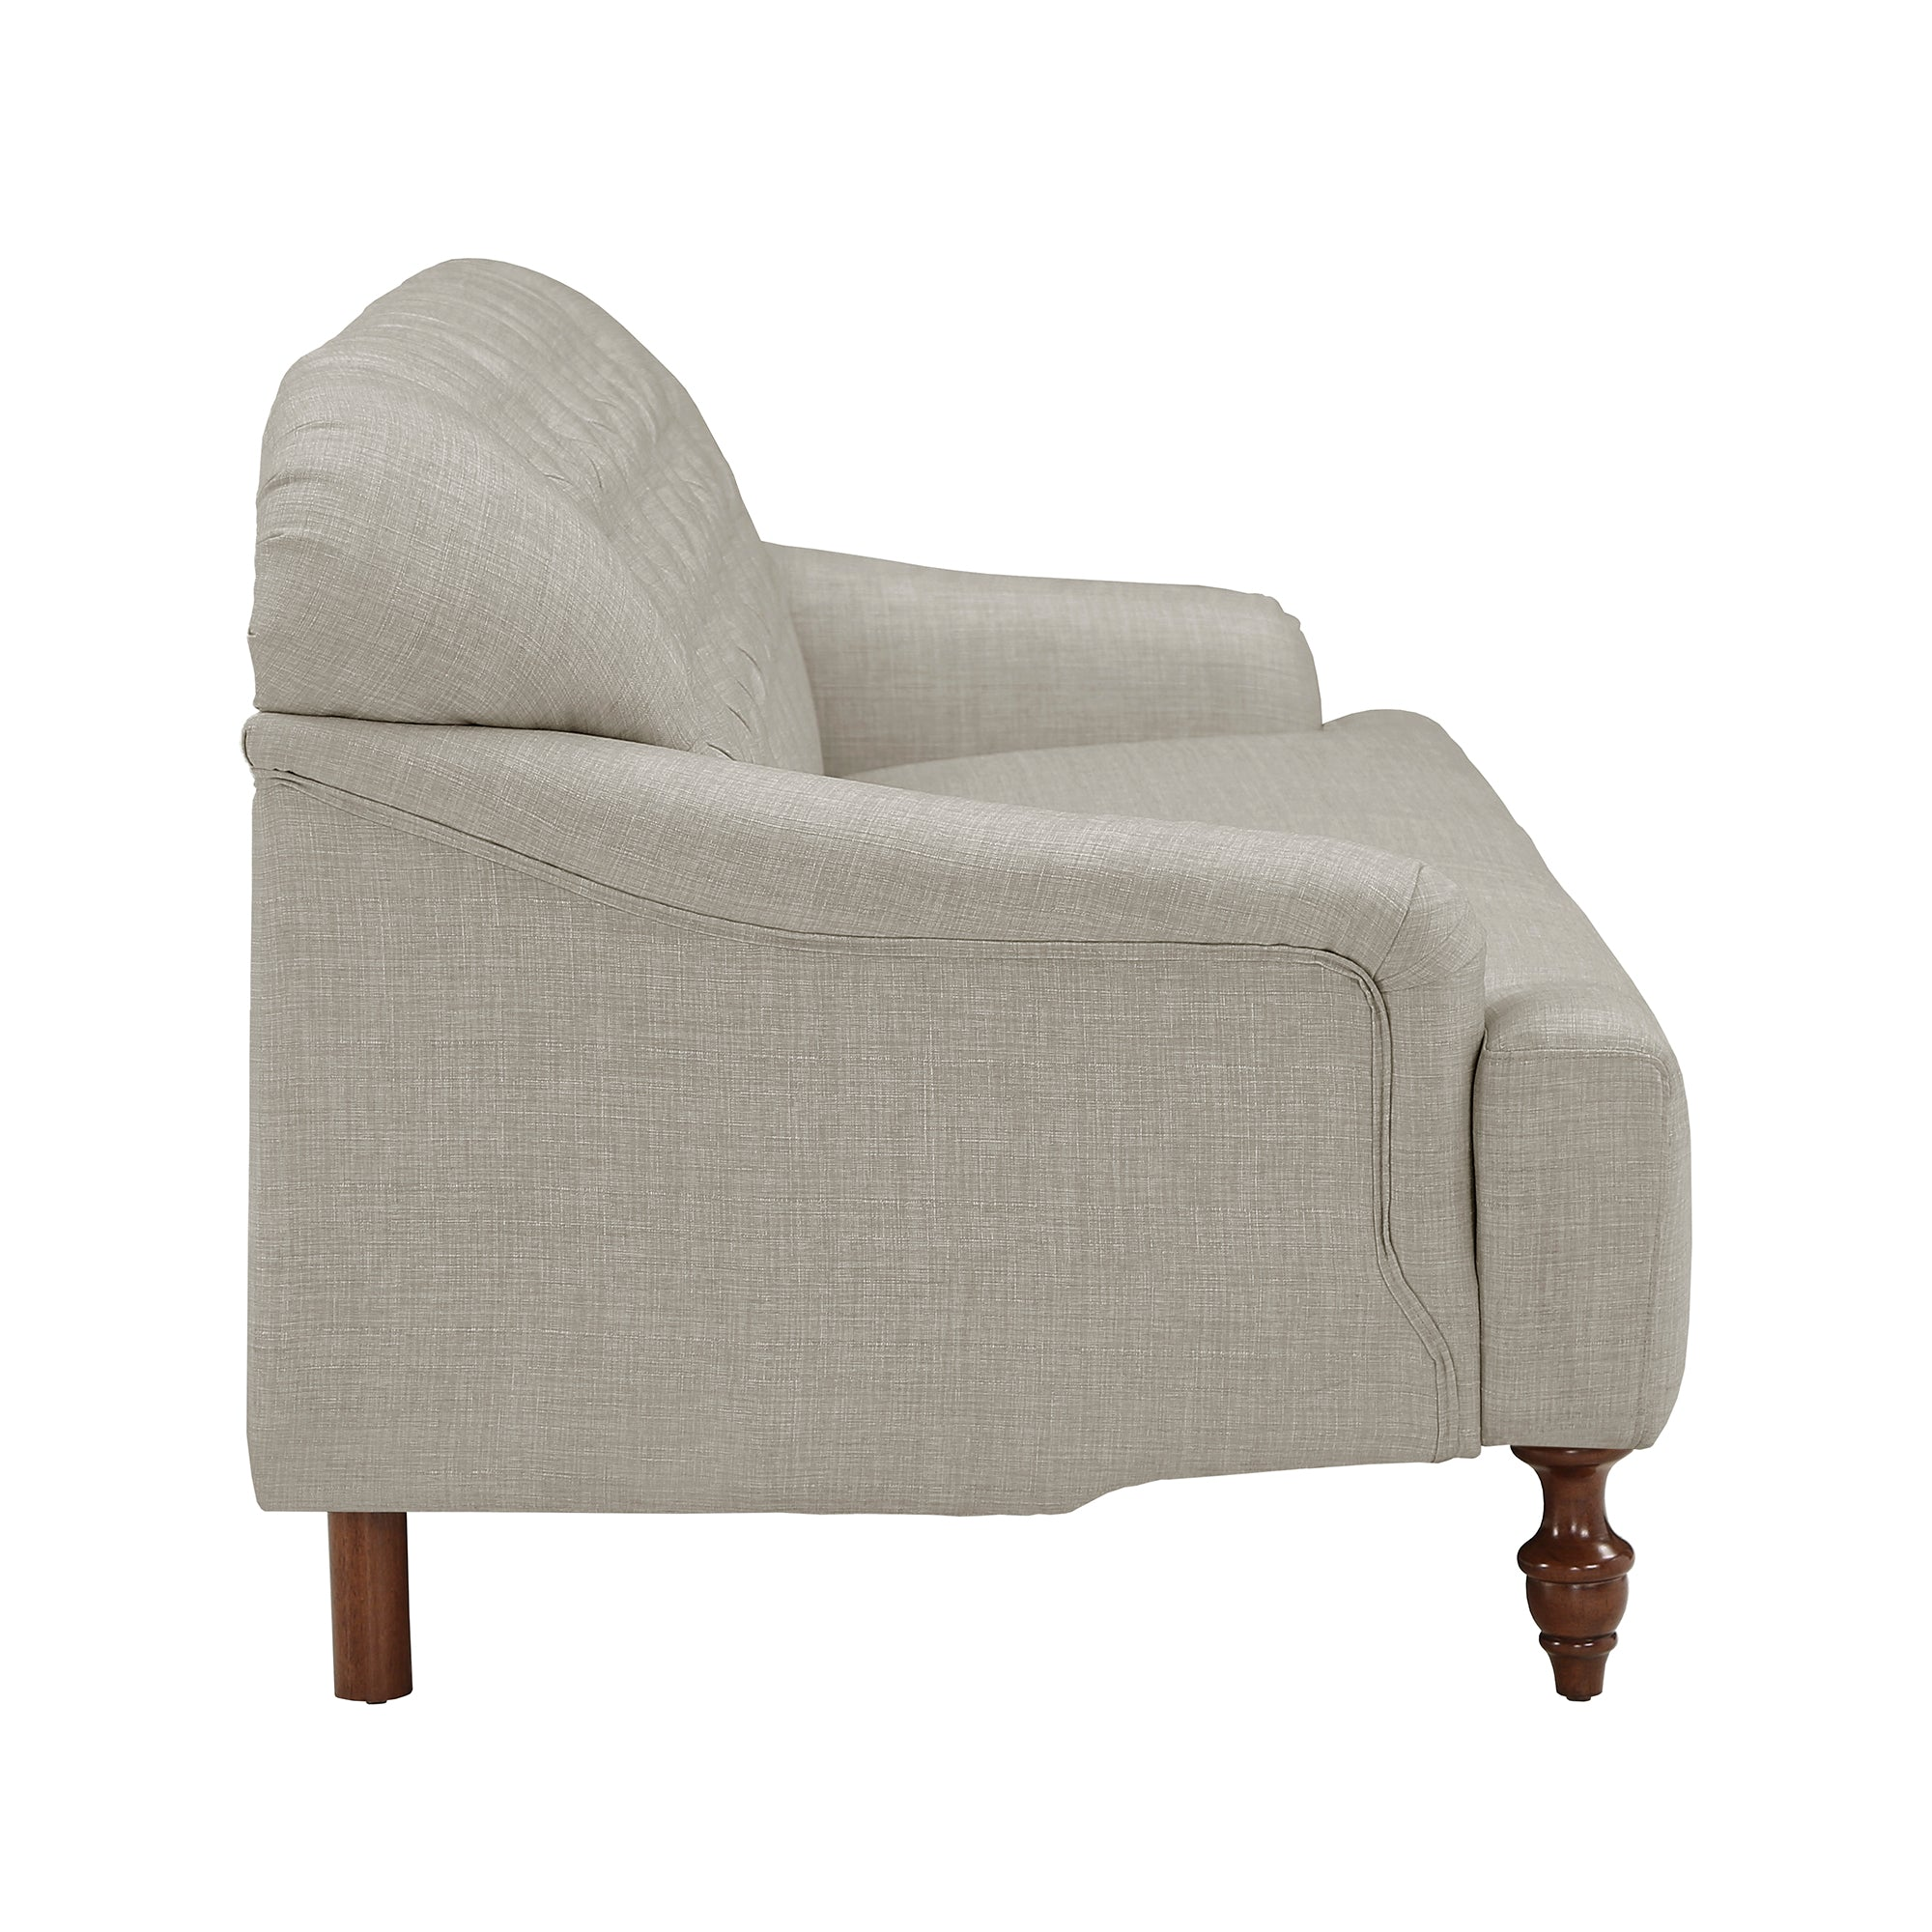 Walnut Finish Linen Chesterfield Sofa - White Linen